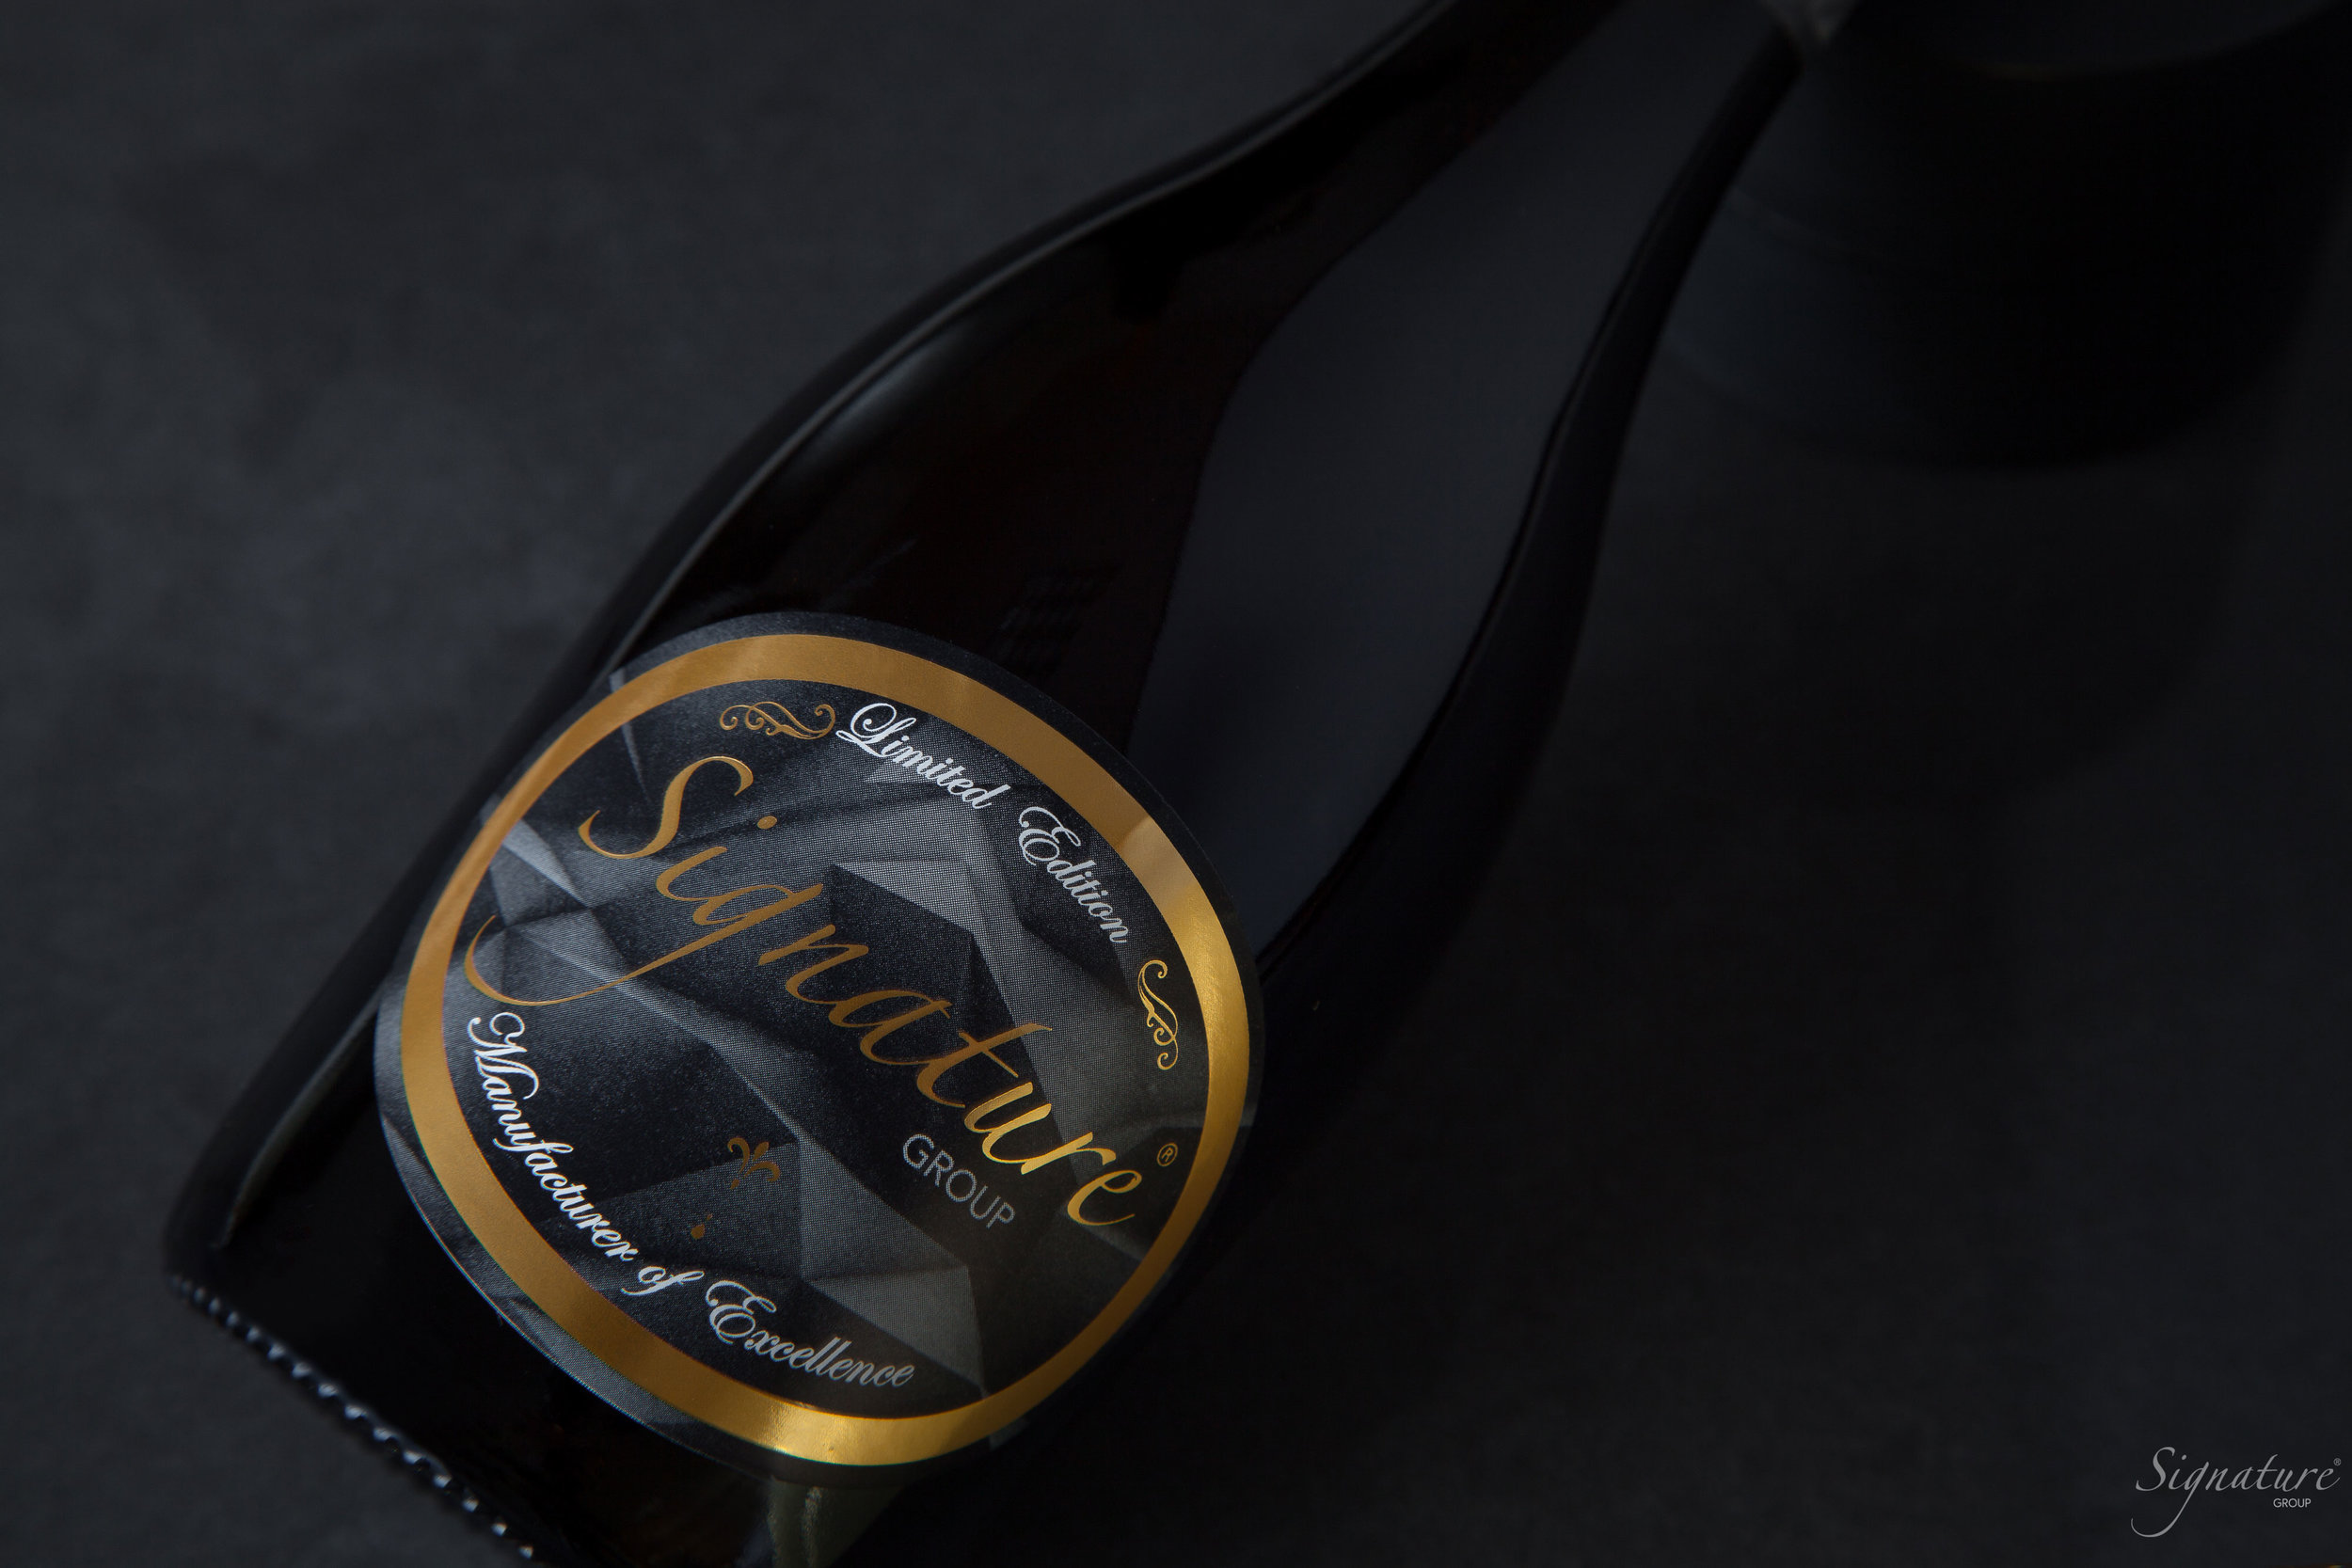 Signature Limited Edition Beer